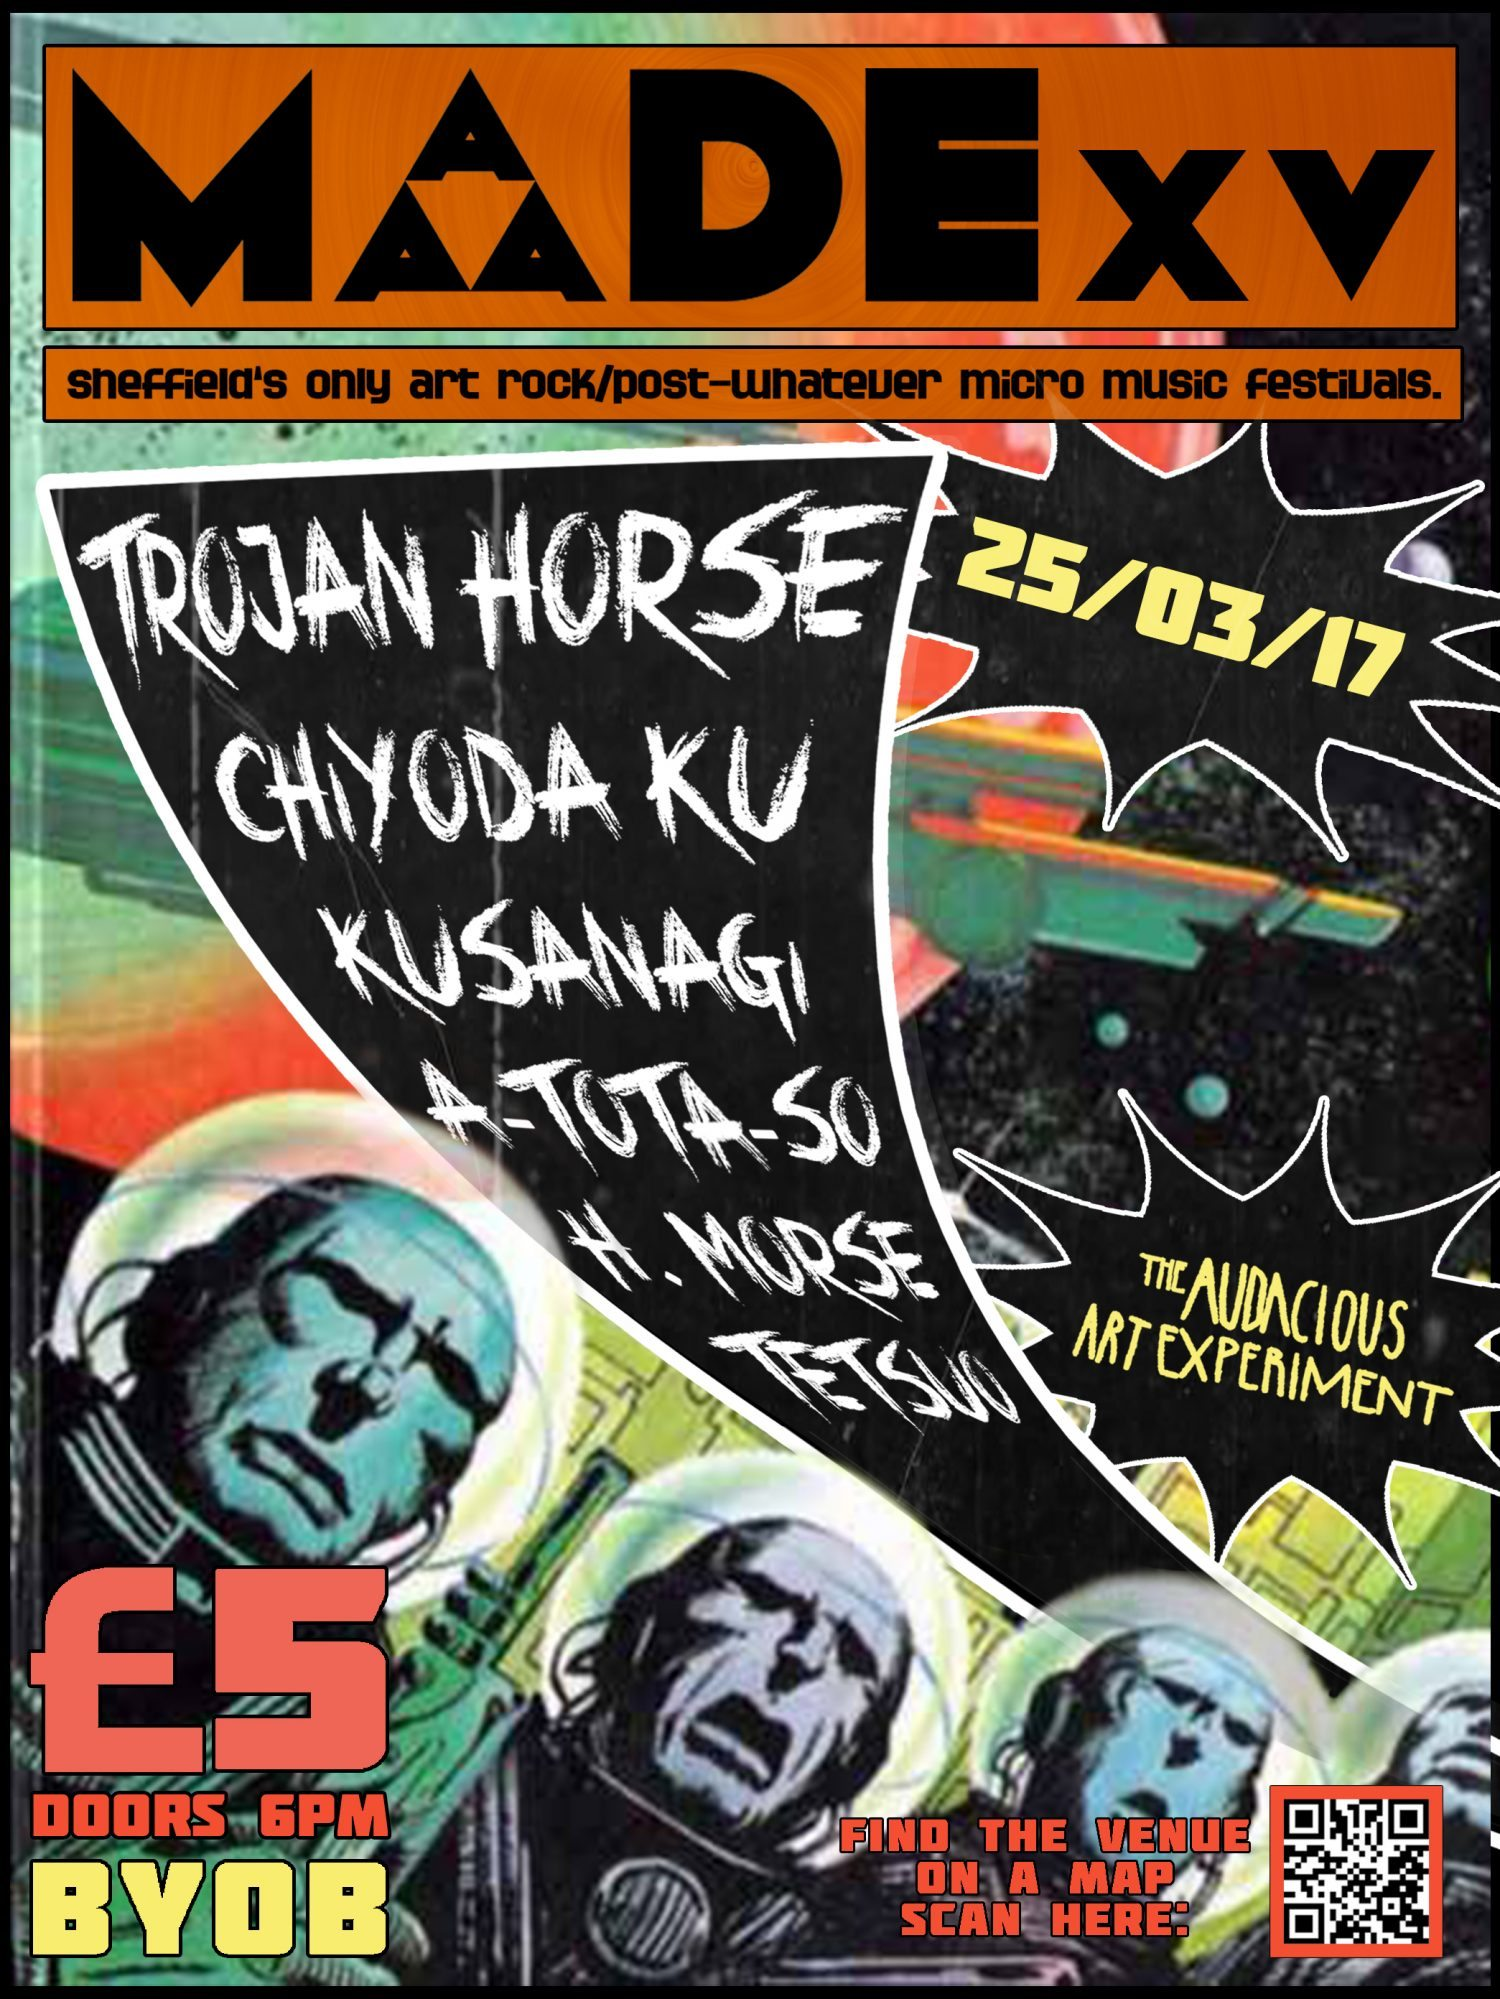 MADE XV: Trojan Horse & More